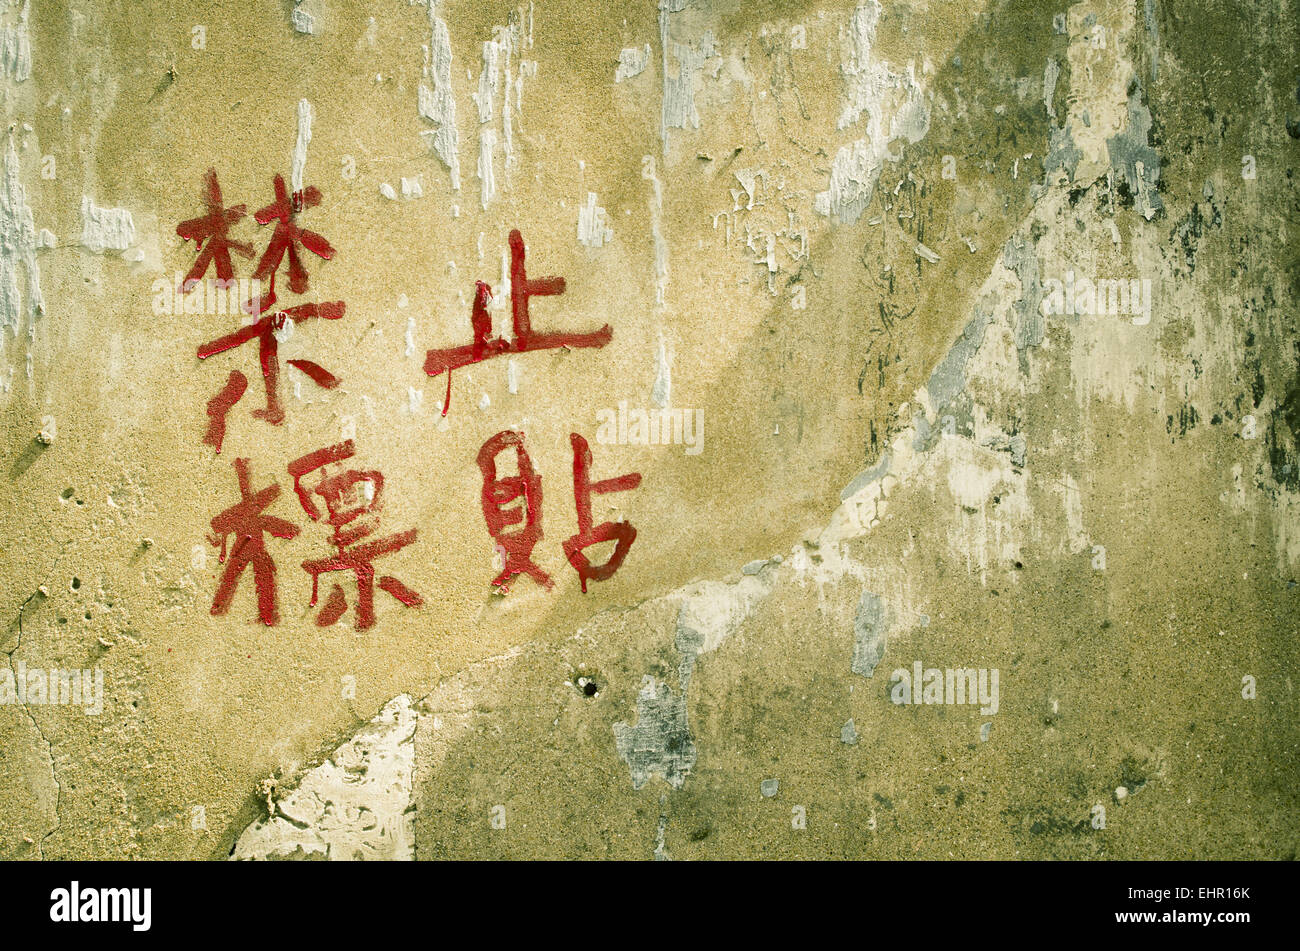 Chinese Characters On Wall Stock Photos & Chinese Characters On Wall ...